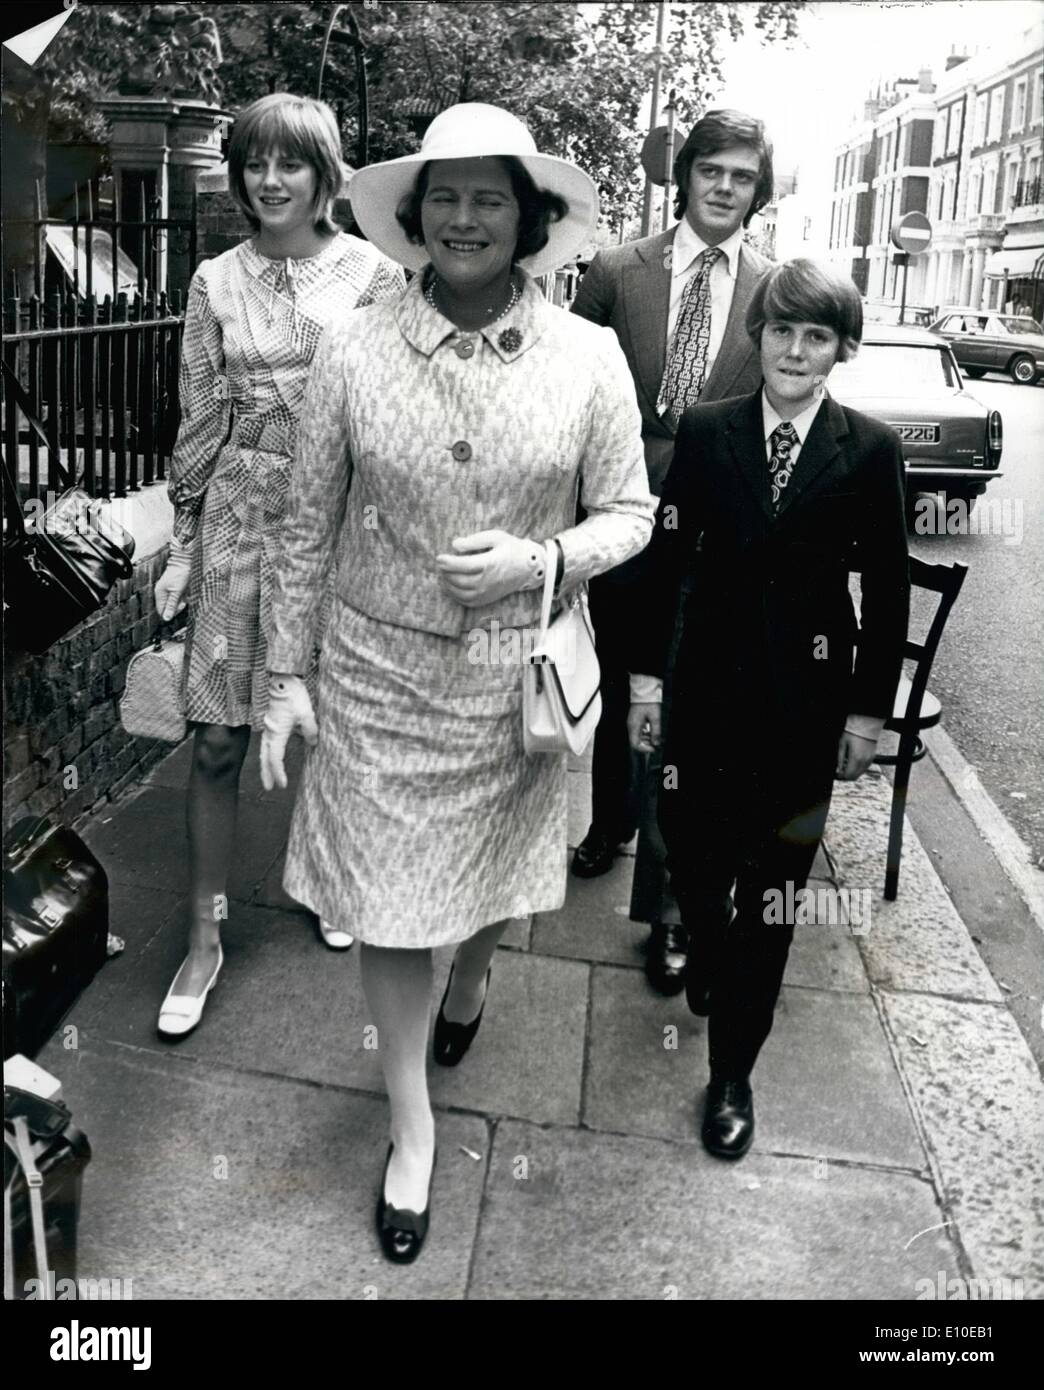 Aug. 08, 1972 - Lady Churchill attends the Wedding of her Granddaughter Arabella: Arabella Churchill, 22-year0-old granddaughter of Sir Winston and Lady Churchill, was married today to 23-year-old Scots schoolteacher James Barton, whose father is the headmaster of St. Thomas Moore School in Bournemouth. The ceremony took place at the Essex Unitarian Church Kensington, and Lady Churchill was present. Photo shows Mary Soames and family arrive for wedding - Stock Image